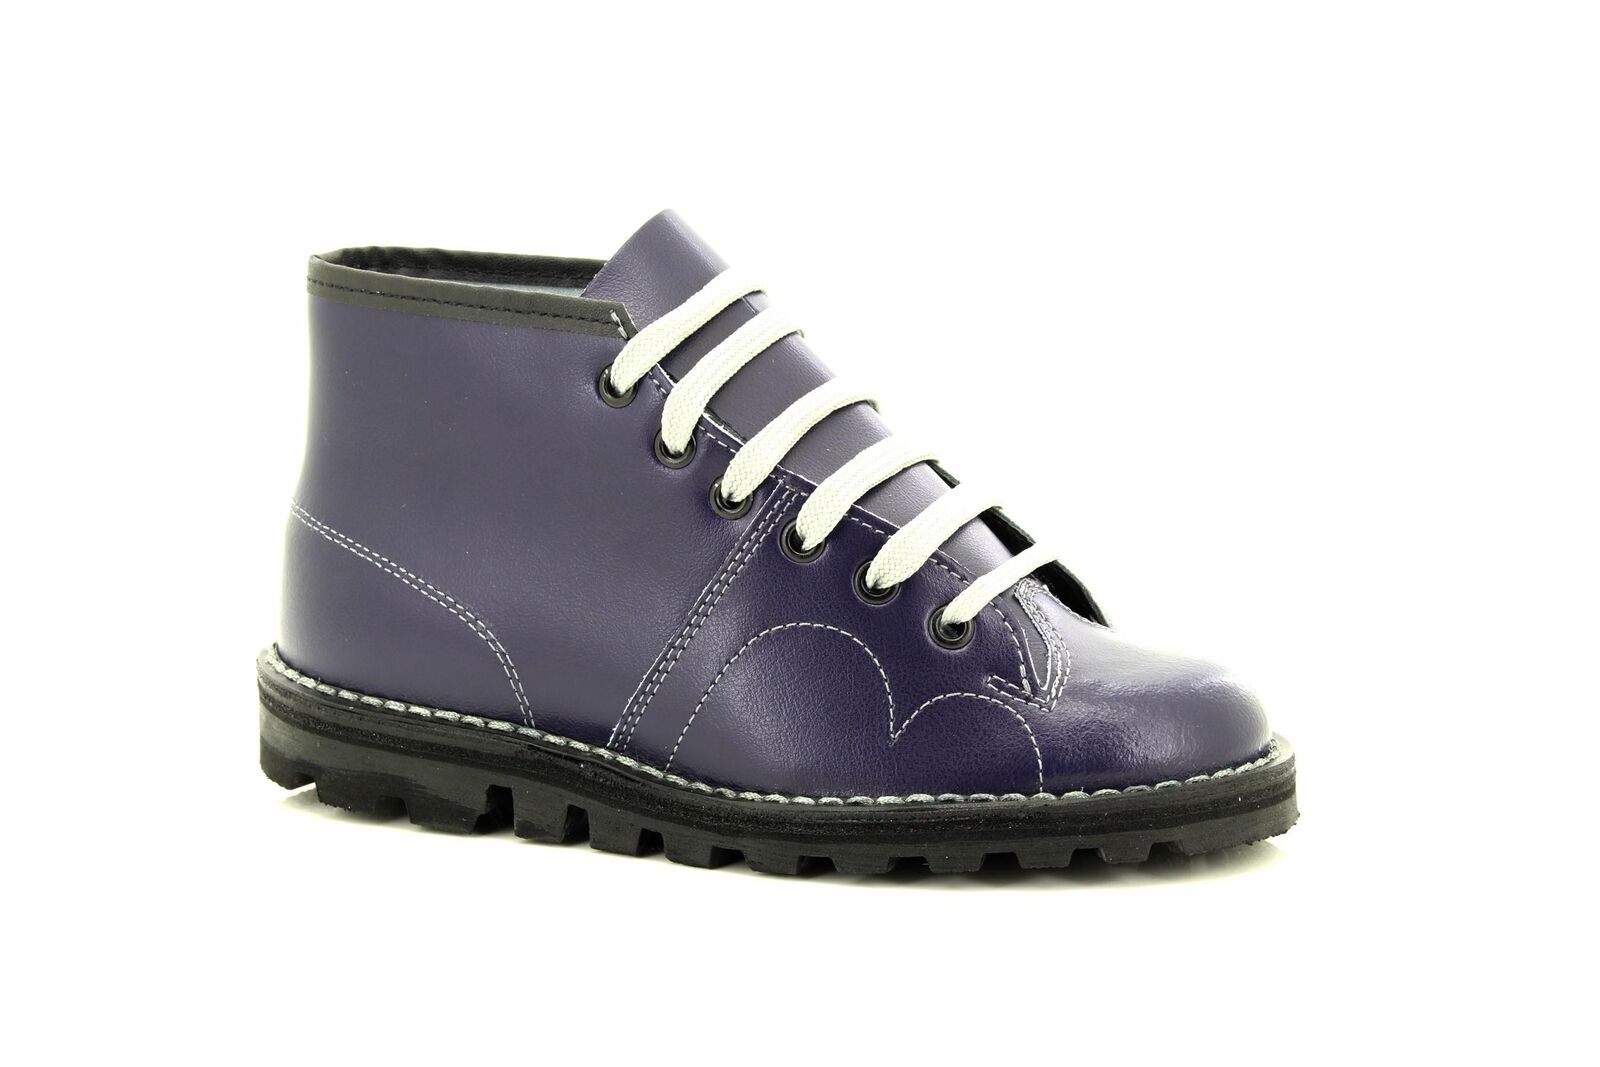 Grafters Unisex Original Retro Lace Up Monkey Boots 1960's Style Navy Coated Lea